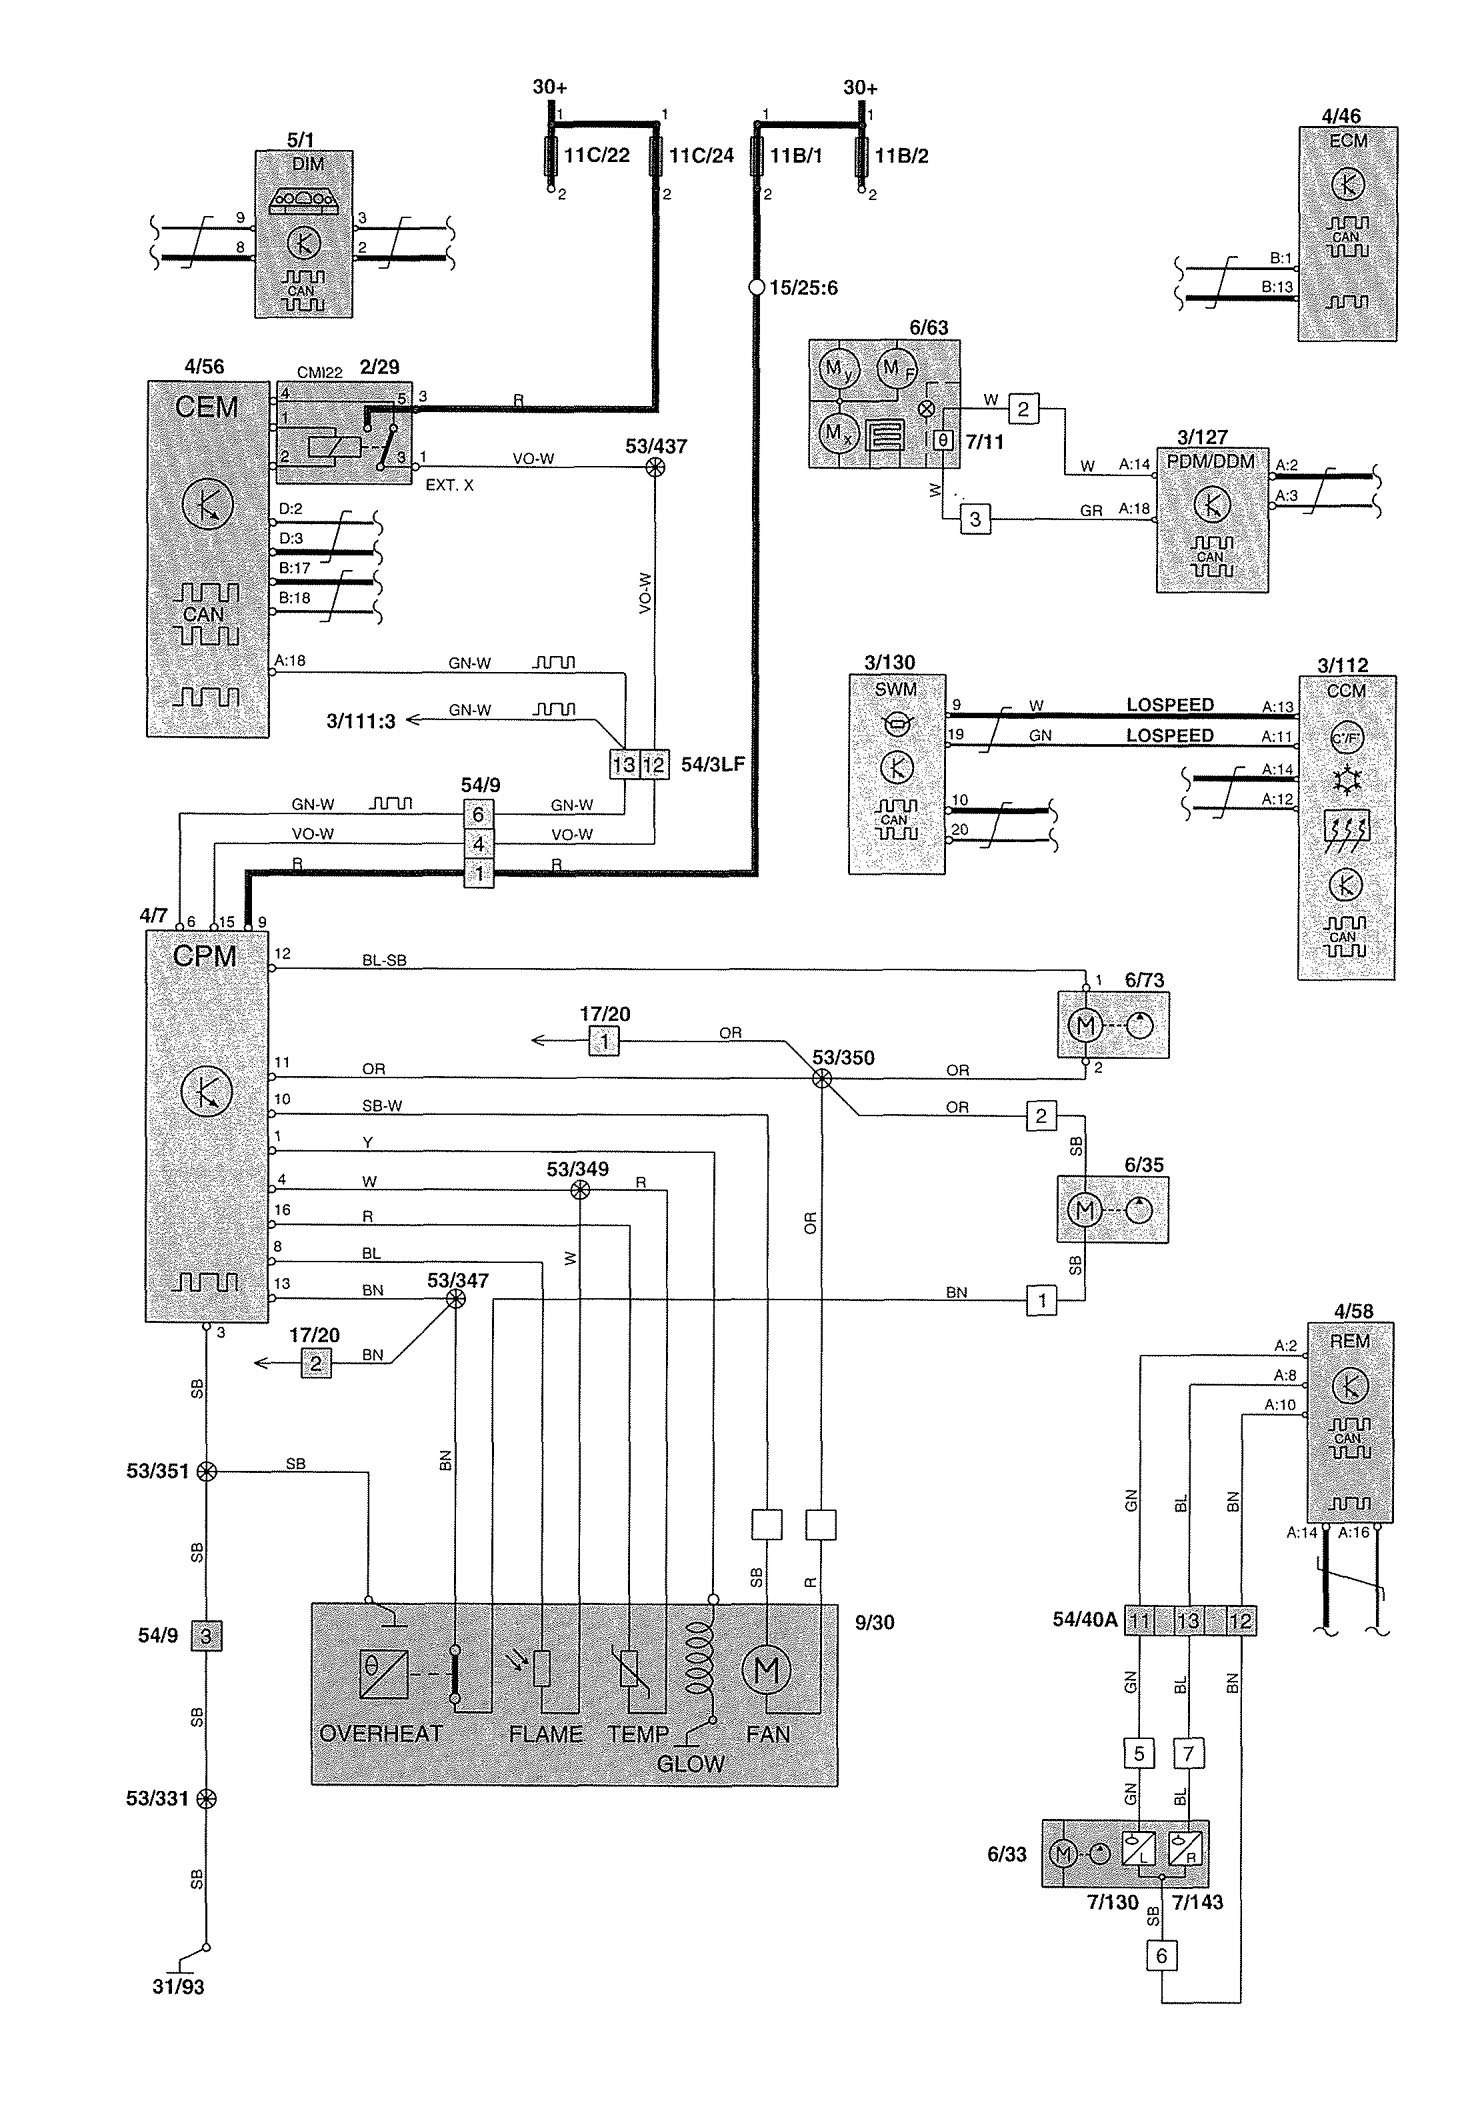 2003 bmw z4 wiring diagram we 4908  wiring diagram for volvo xc90 download diagram  we 4908  wiring diagram for volvo xc90